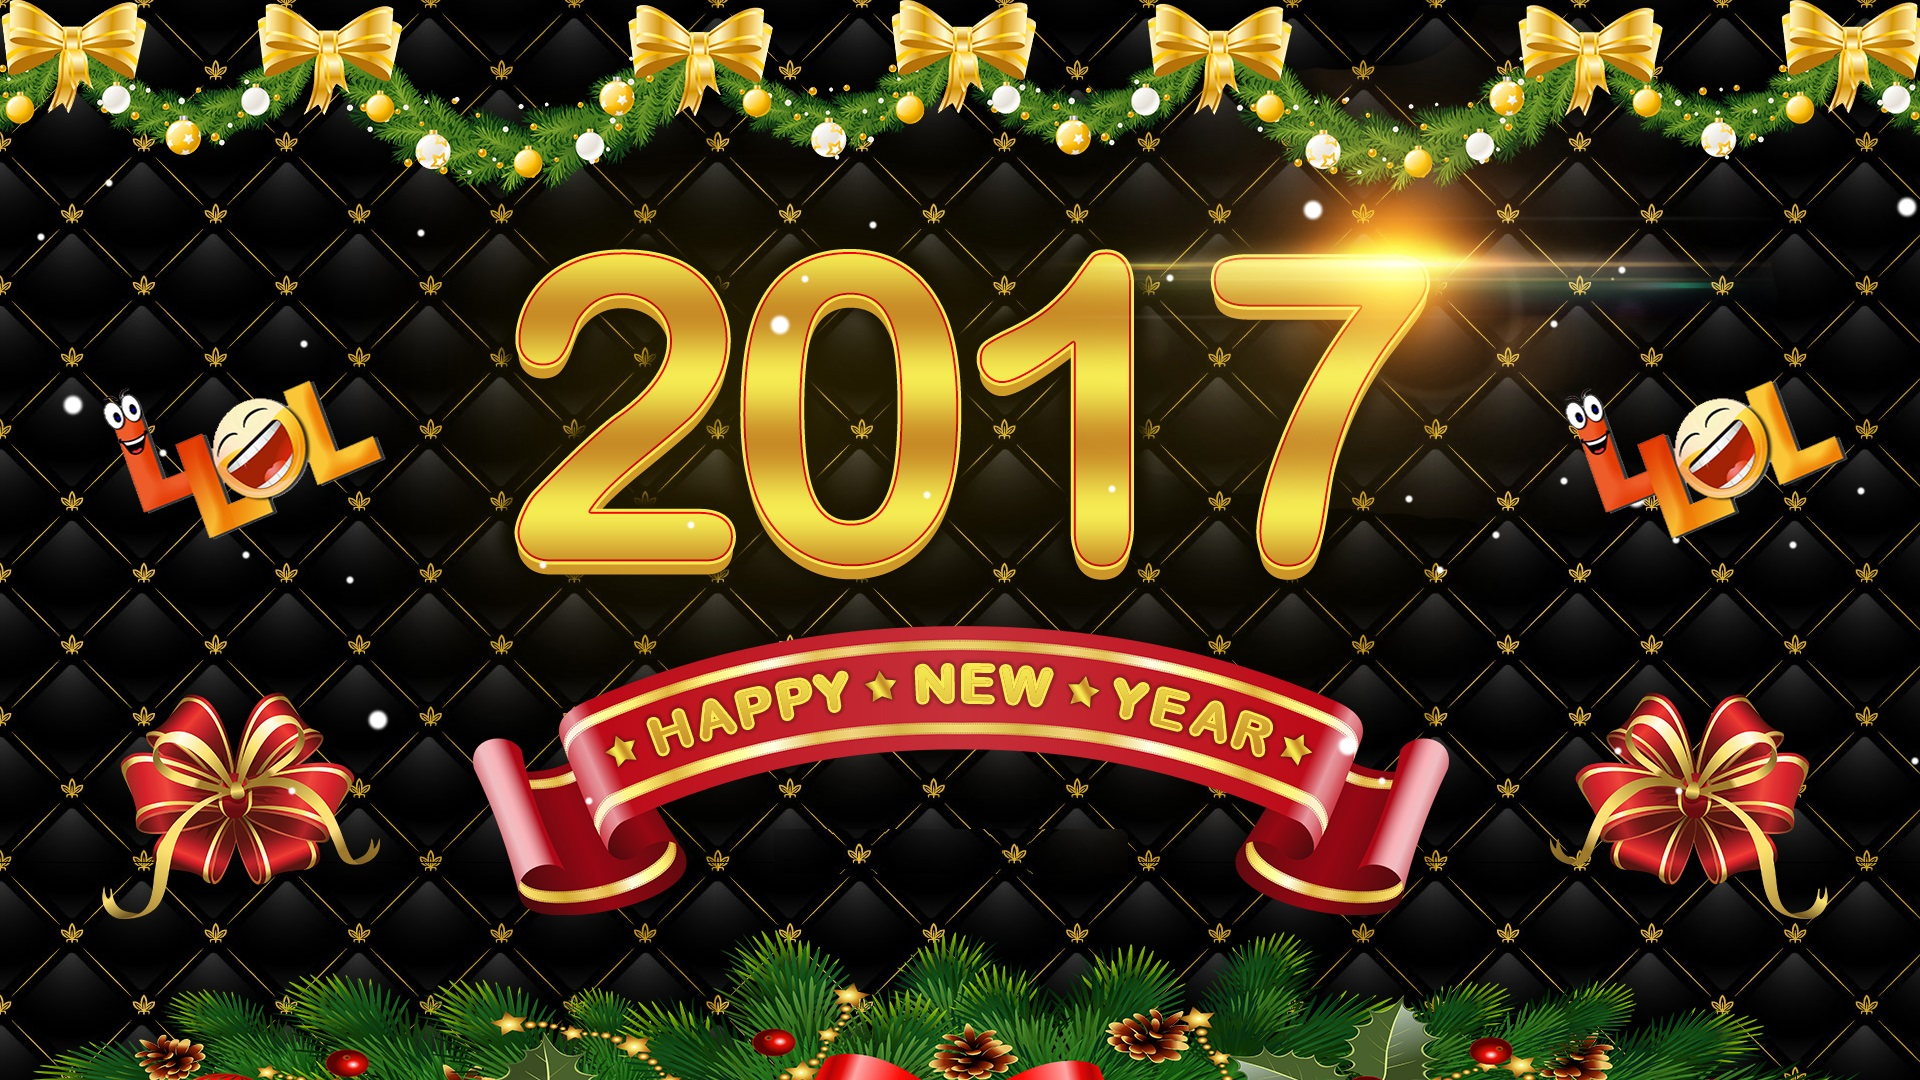 2017 New Year Wishes Wallpapers image